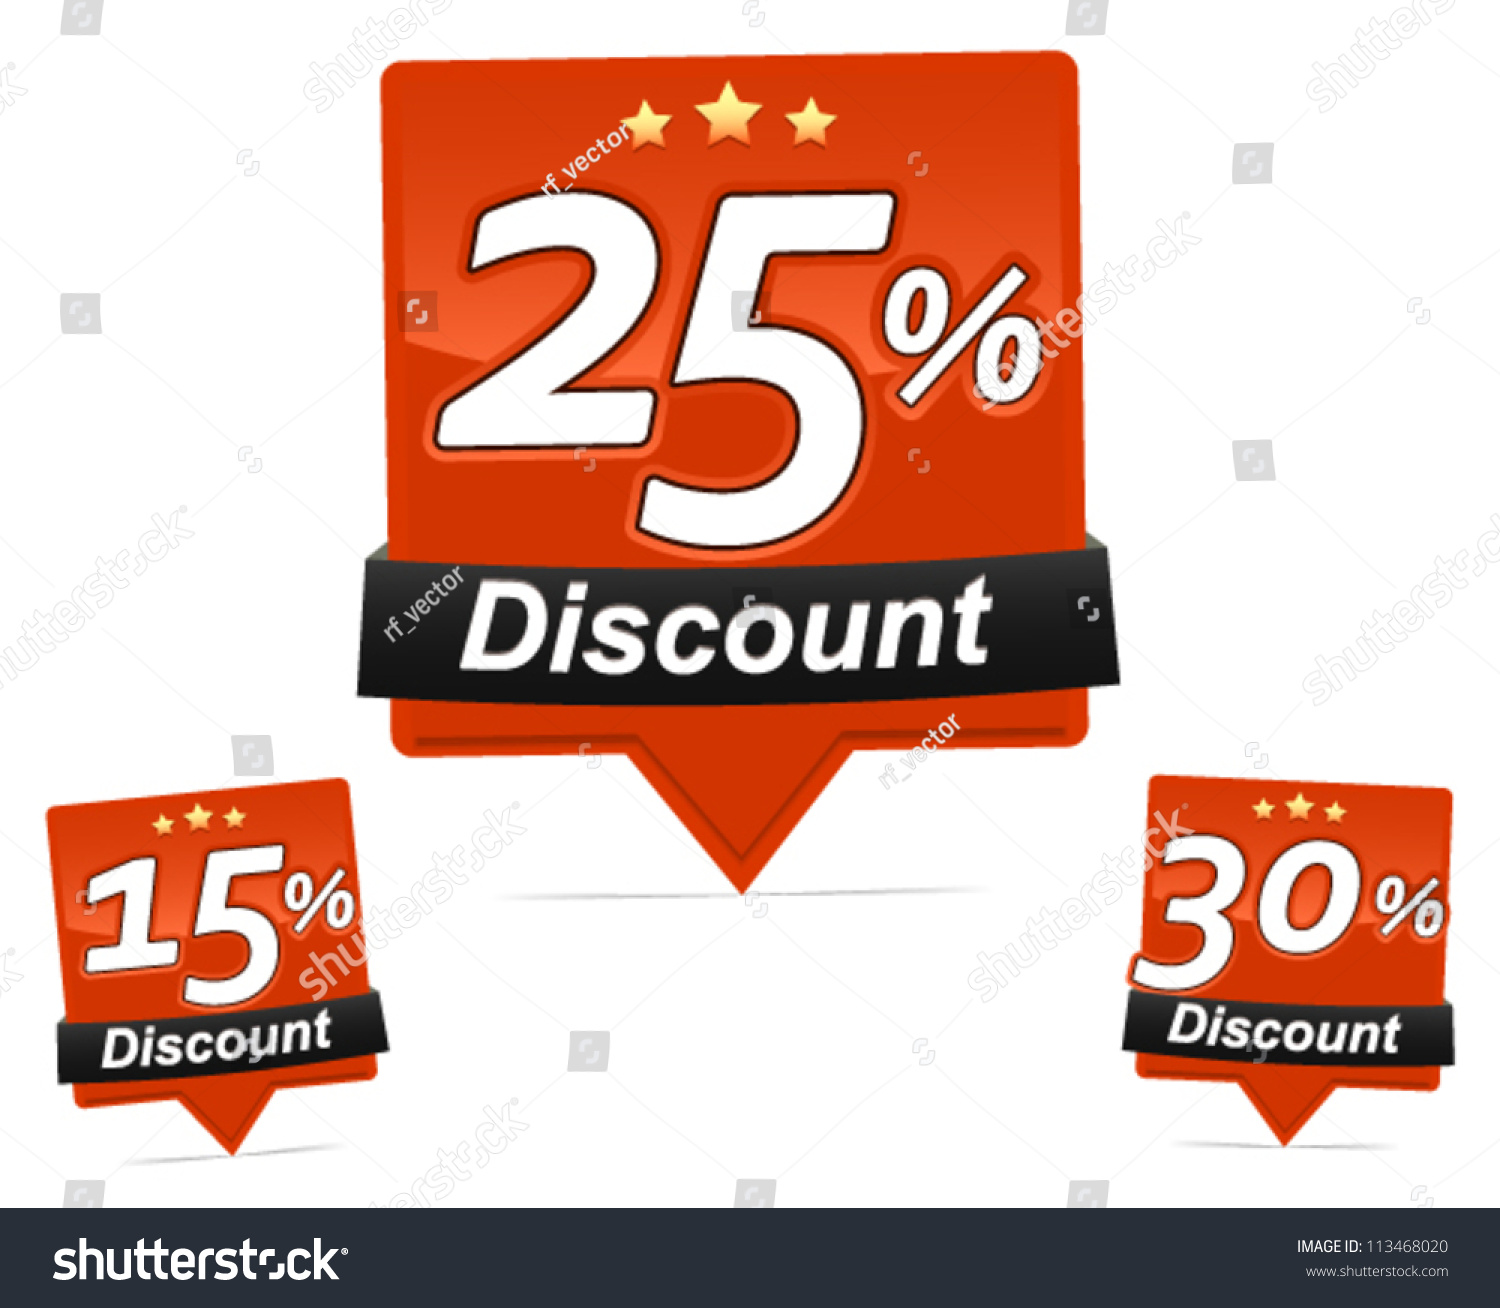 discount badges shiny discount badges vector stock vector discount badges shiny discount badges vector for web shop flyer brochure and